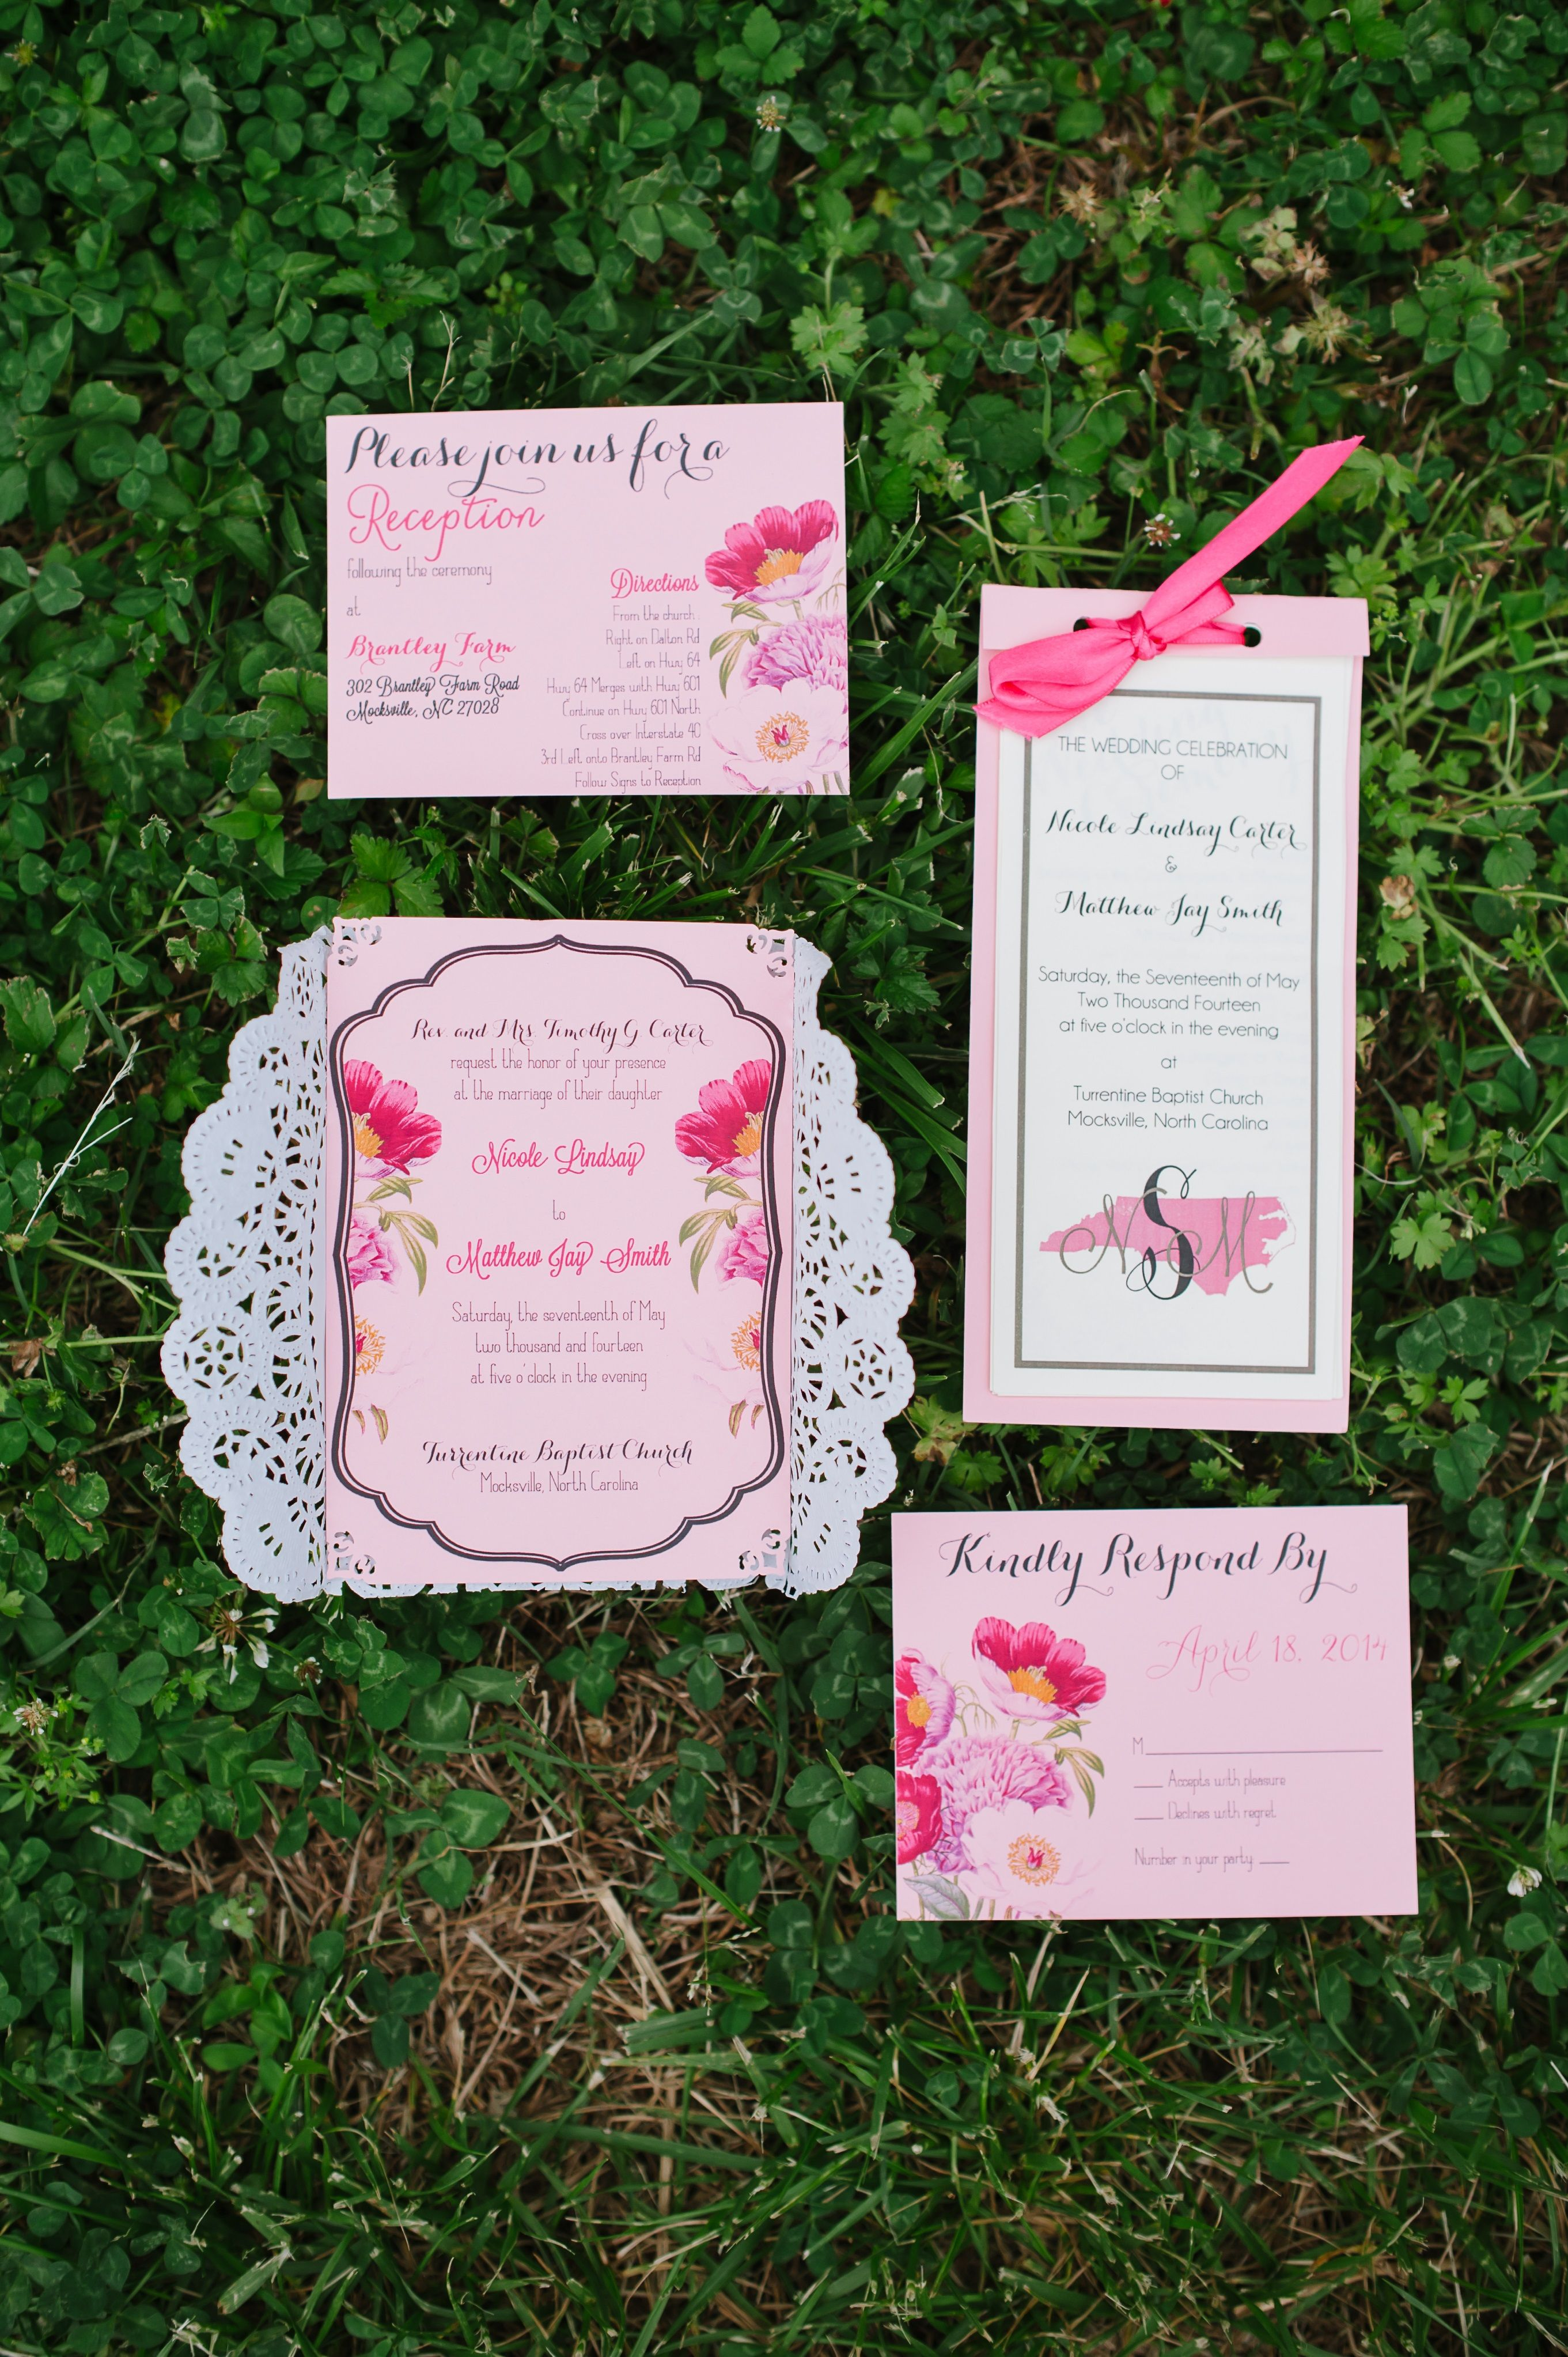 DIY wedding invitations with doilies and DIY programs | My Real ...